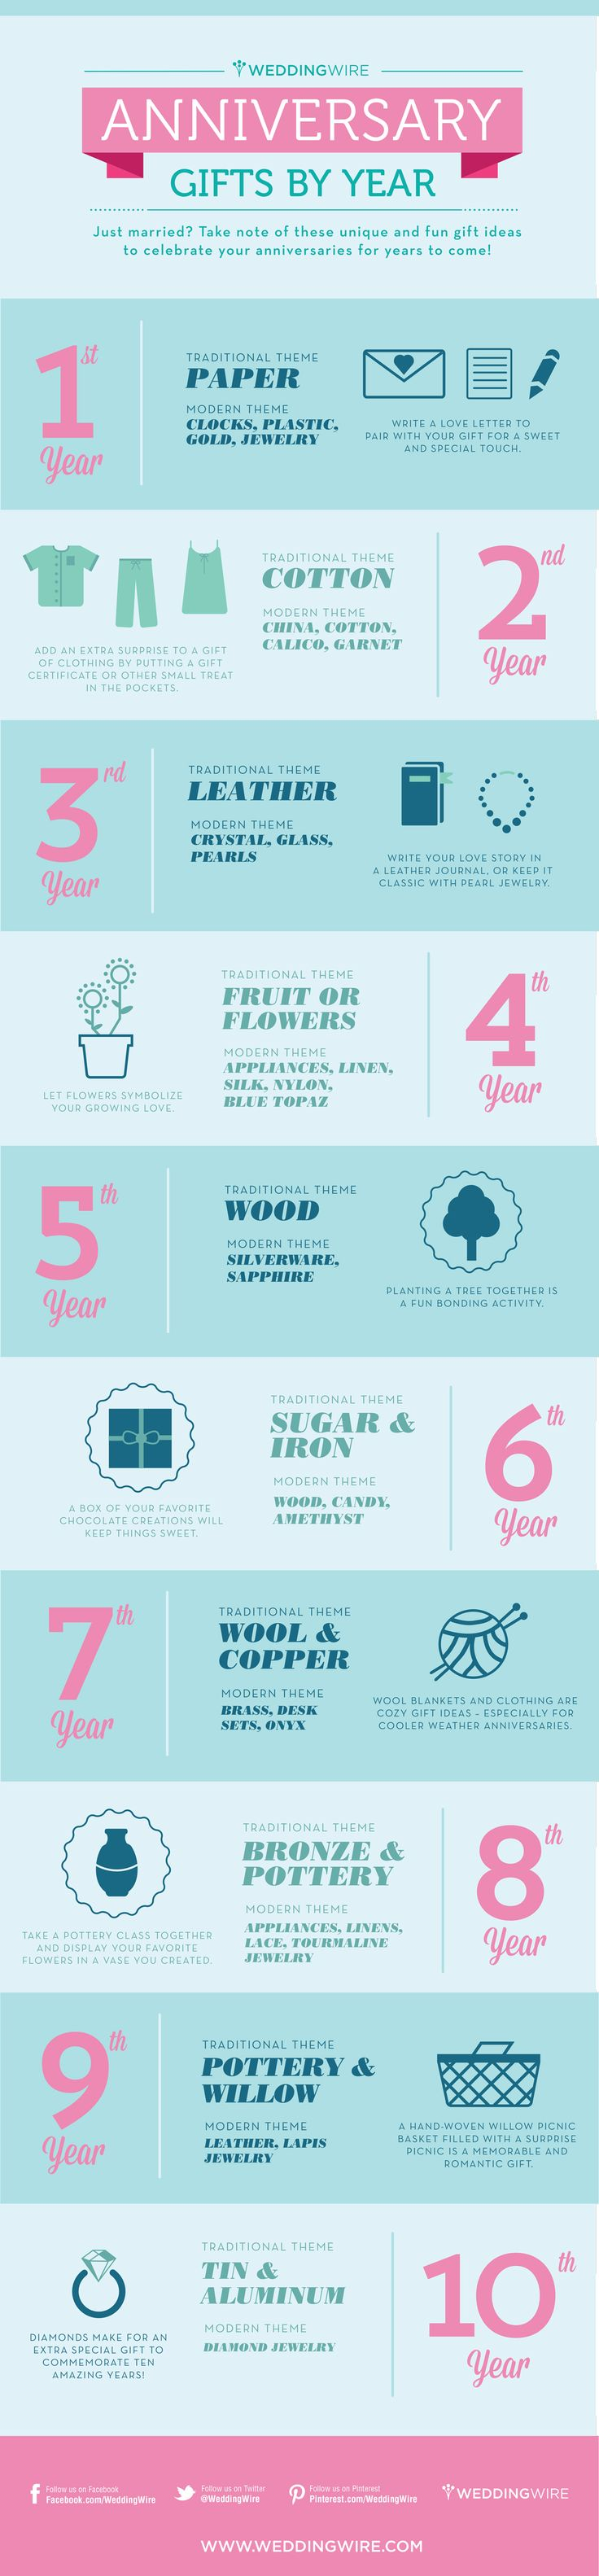 personalised gifts ideas anniversary gifts by year weddingwire